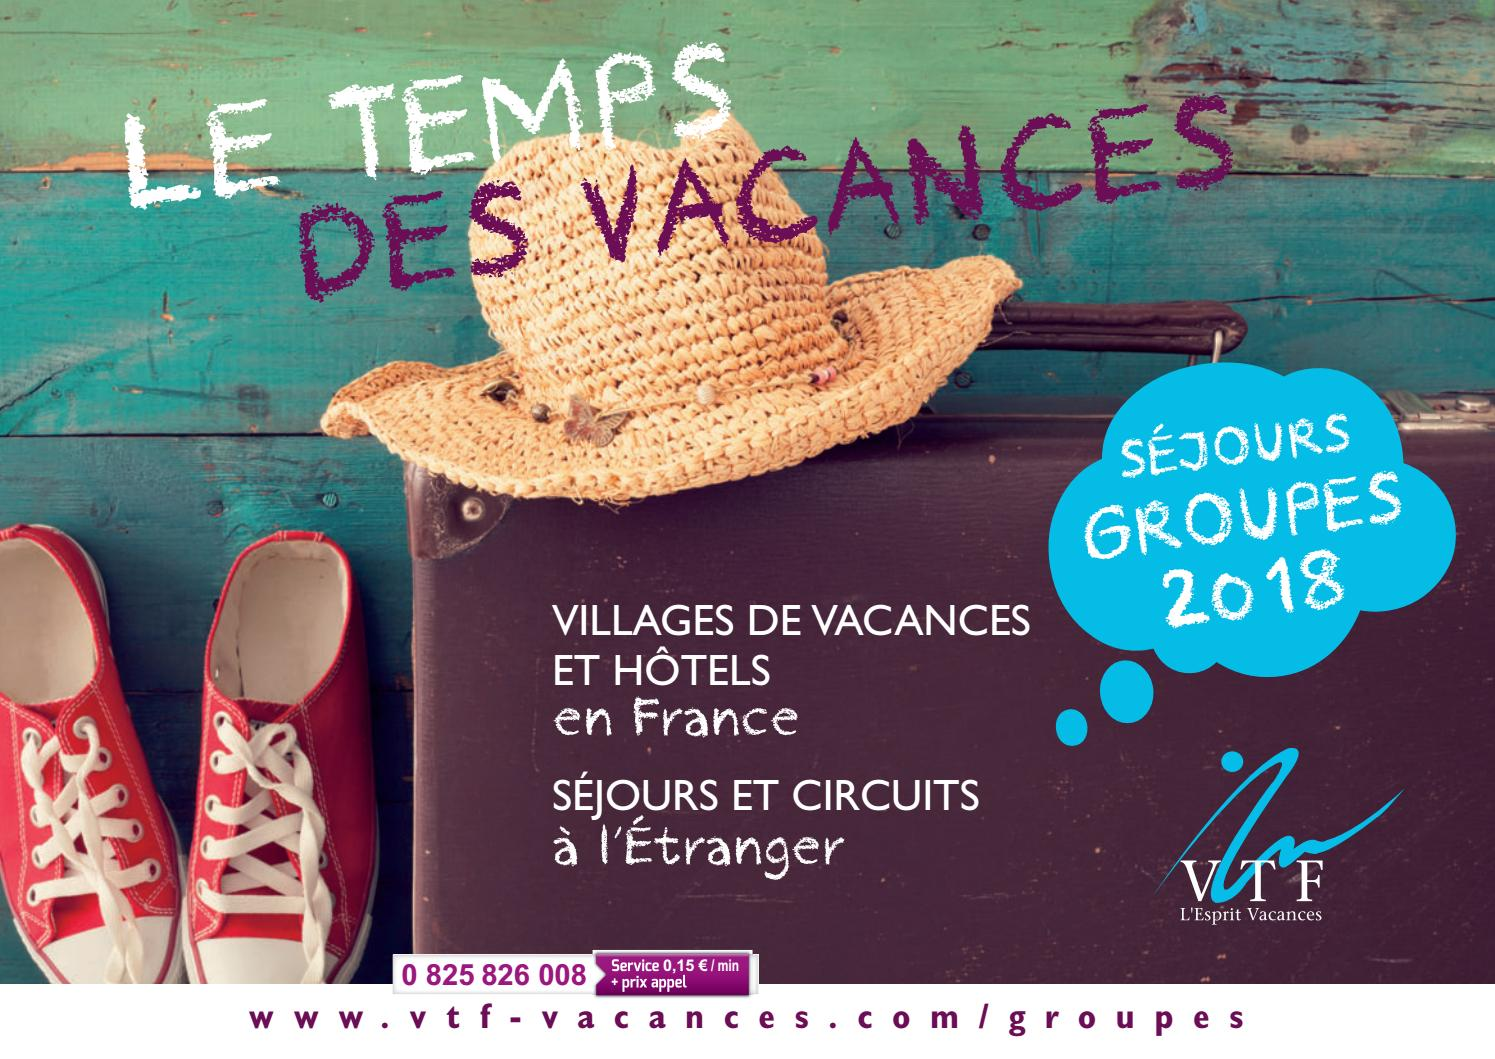 Brochure groupes 40 by VTF L'Esprit Vacances   issuu